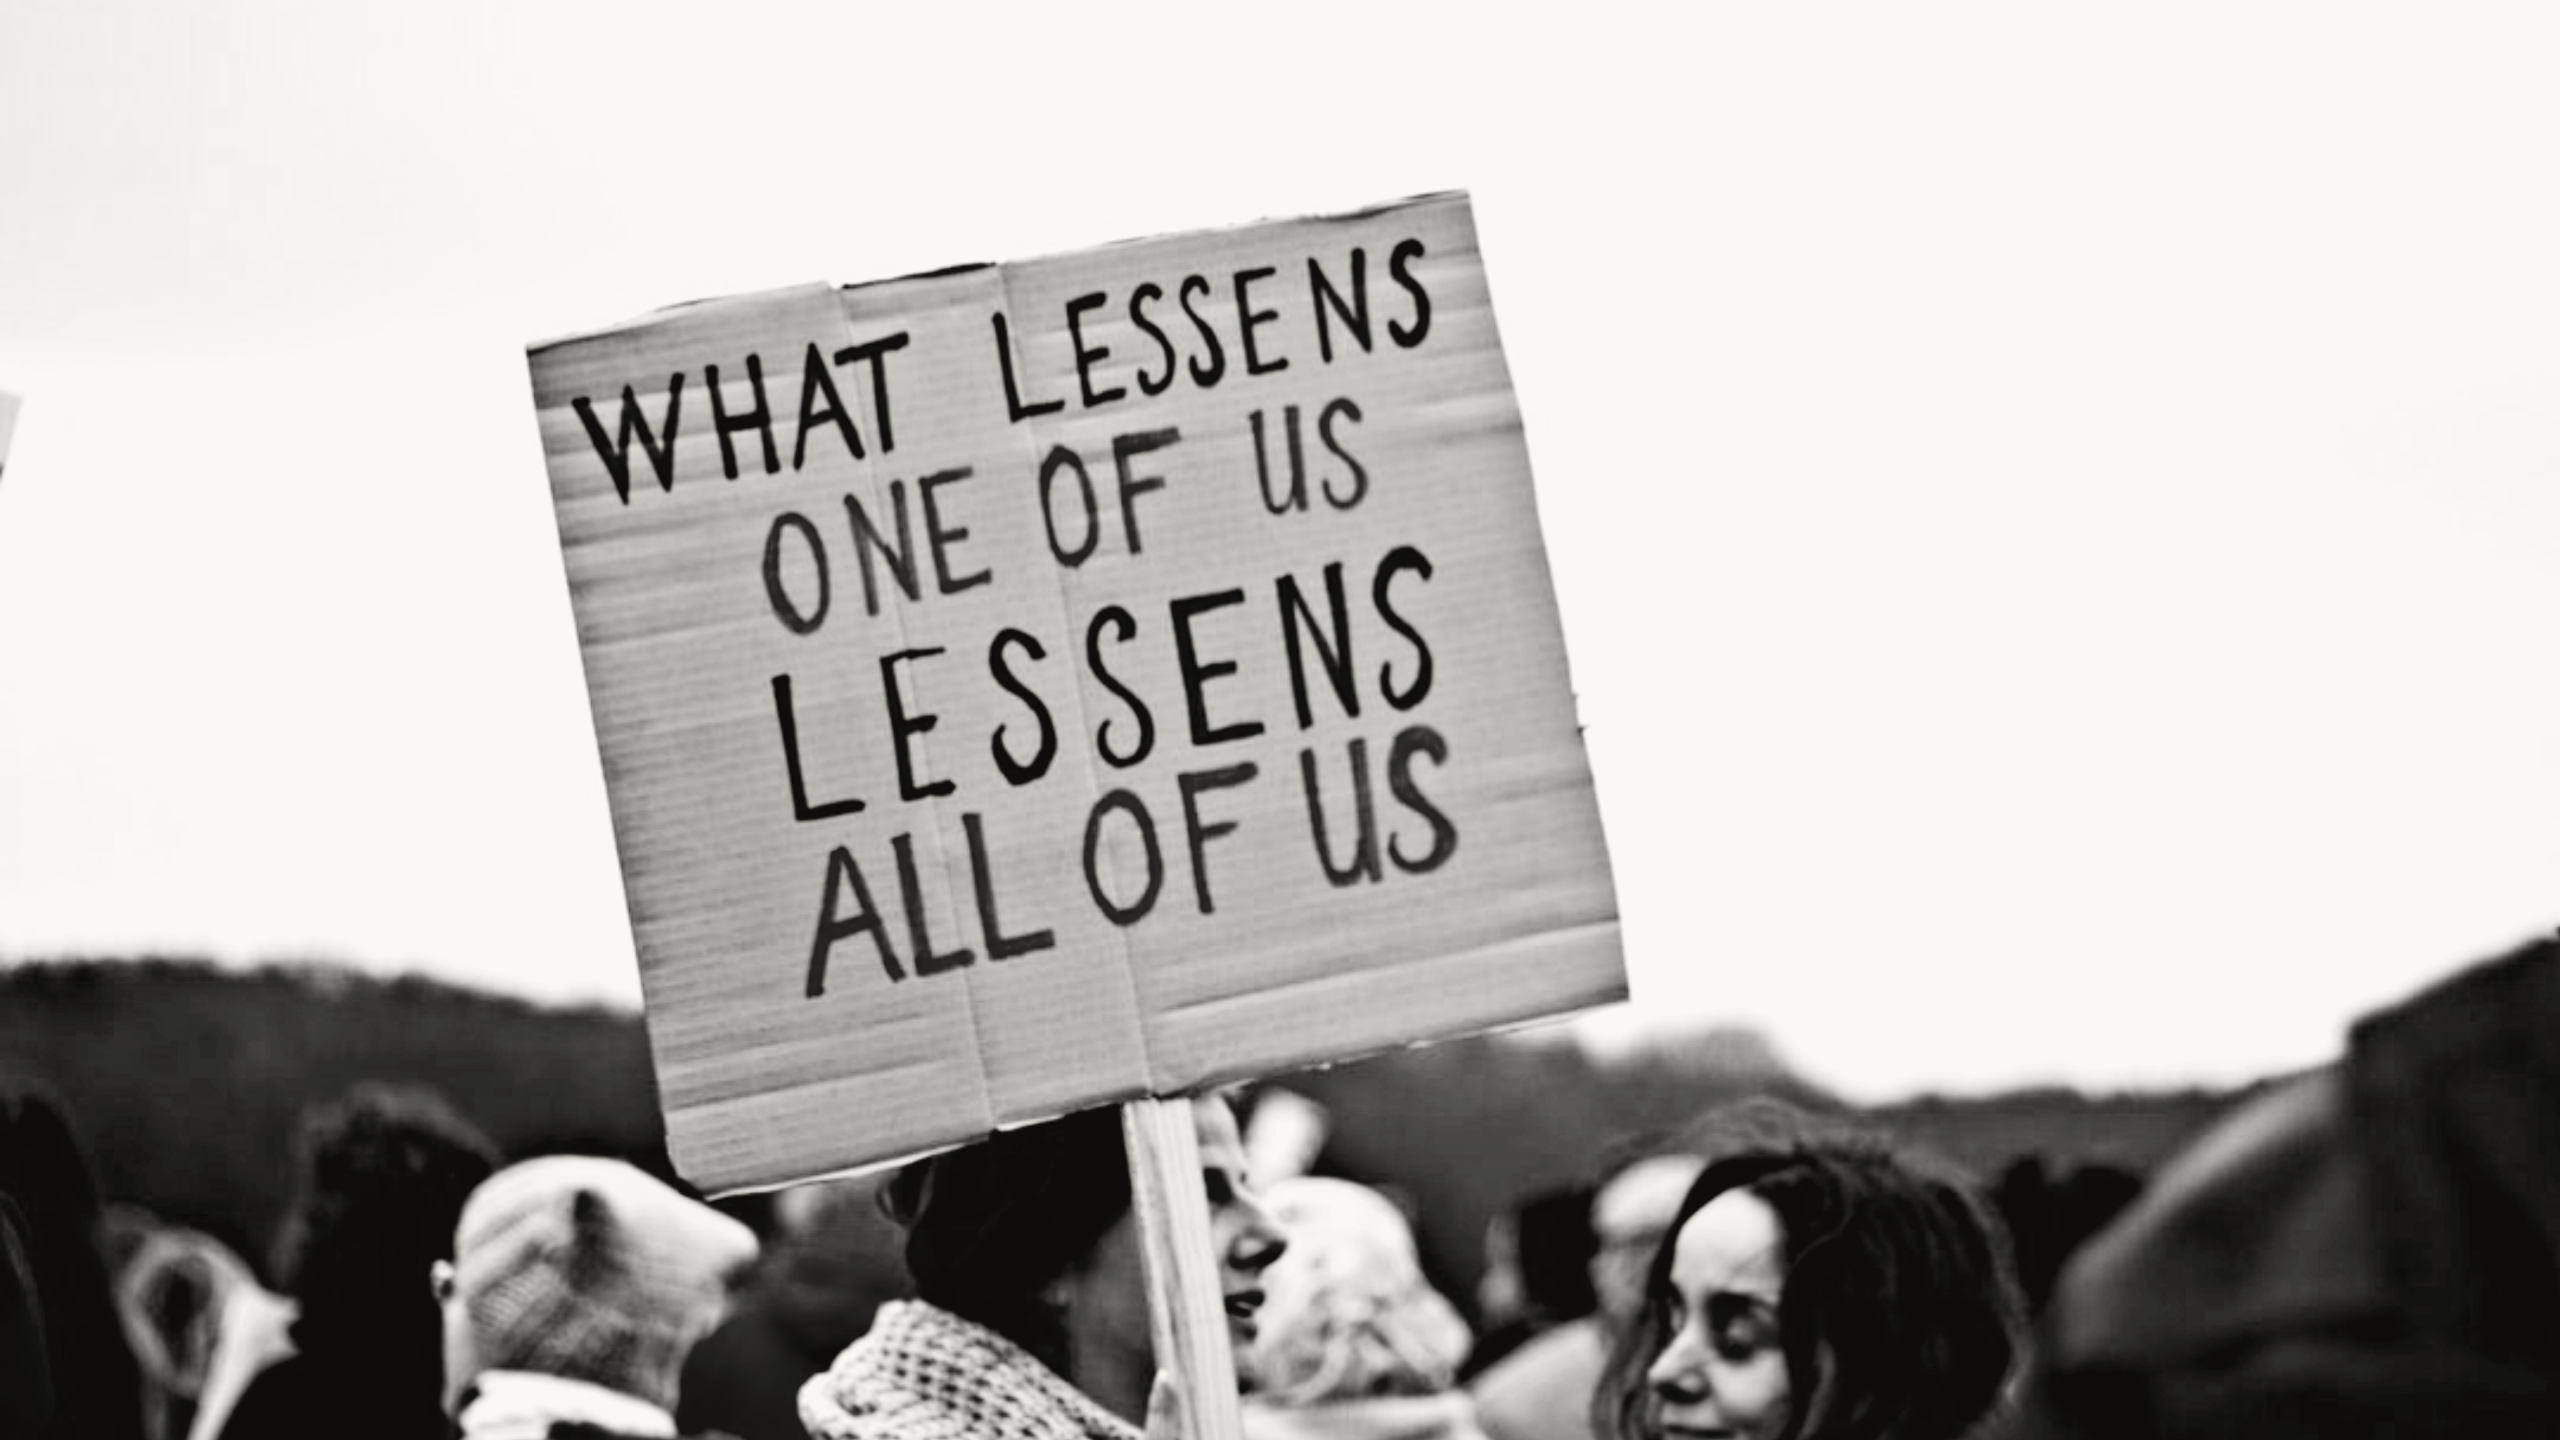 Protest sign reads 'What lessens one of us lessens all of us'.